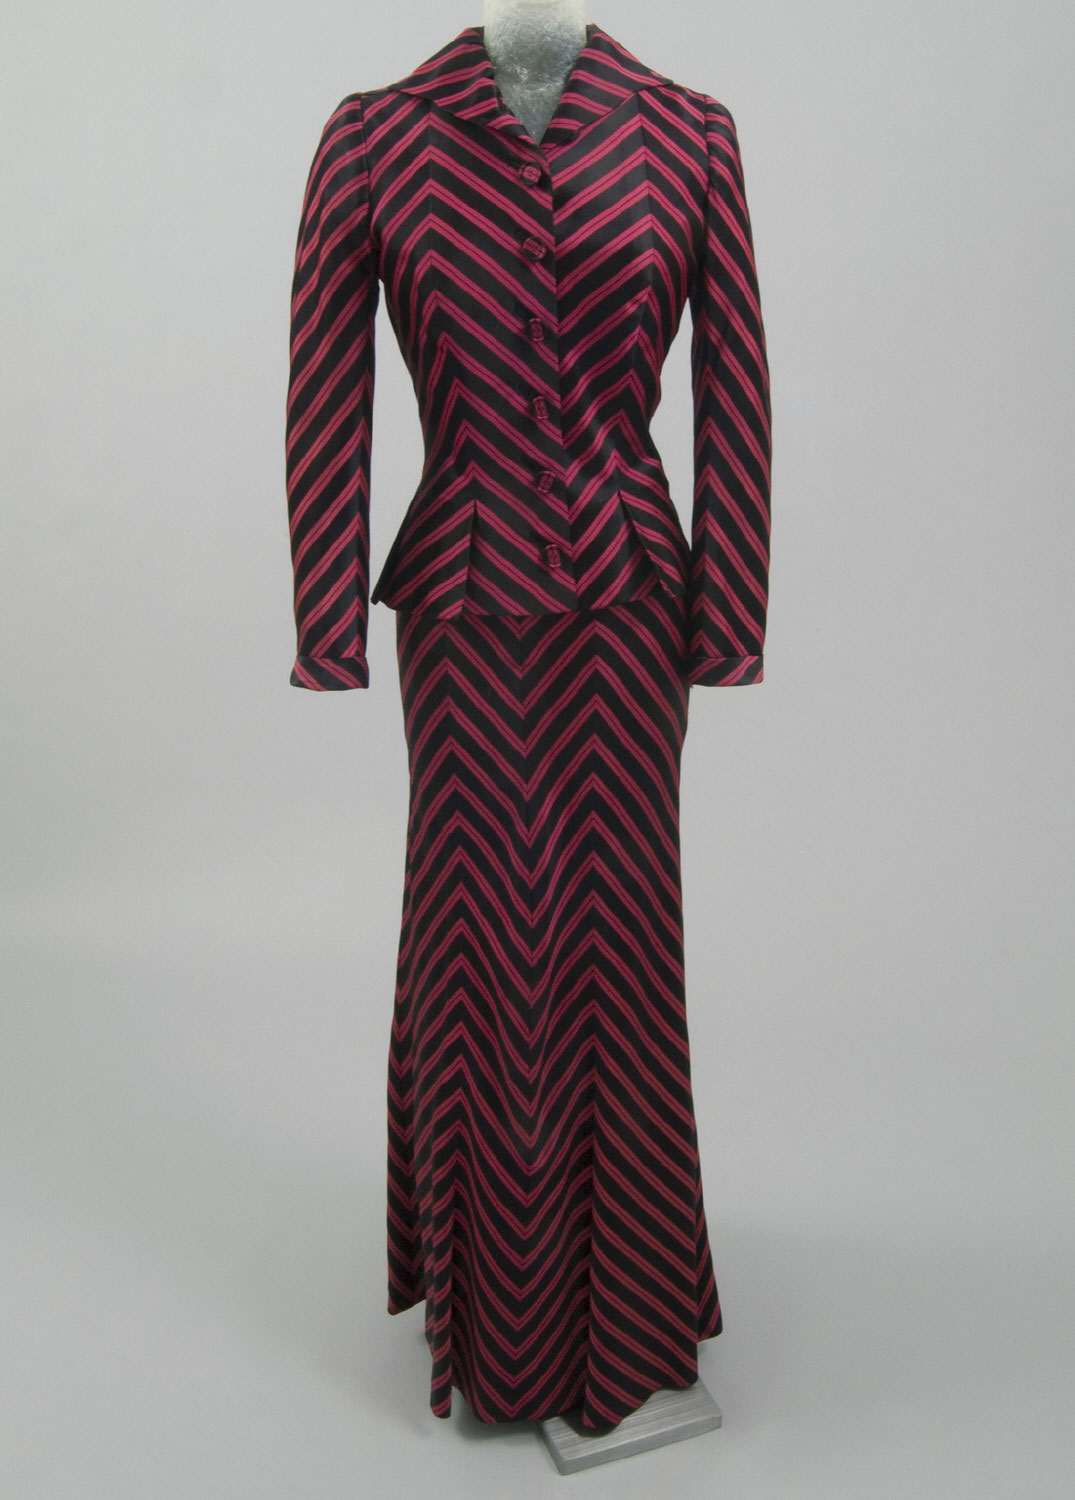 Woman's Dinner Suit: Jacket and Skirt